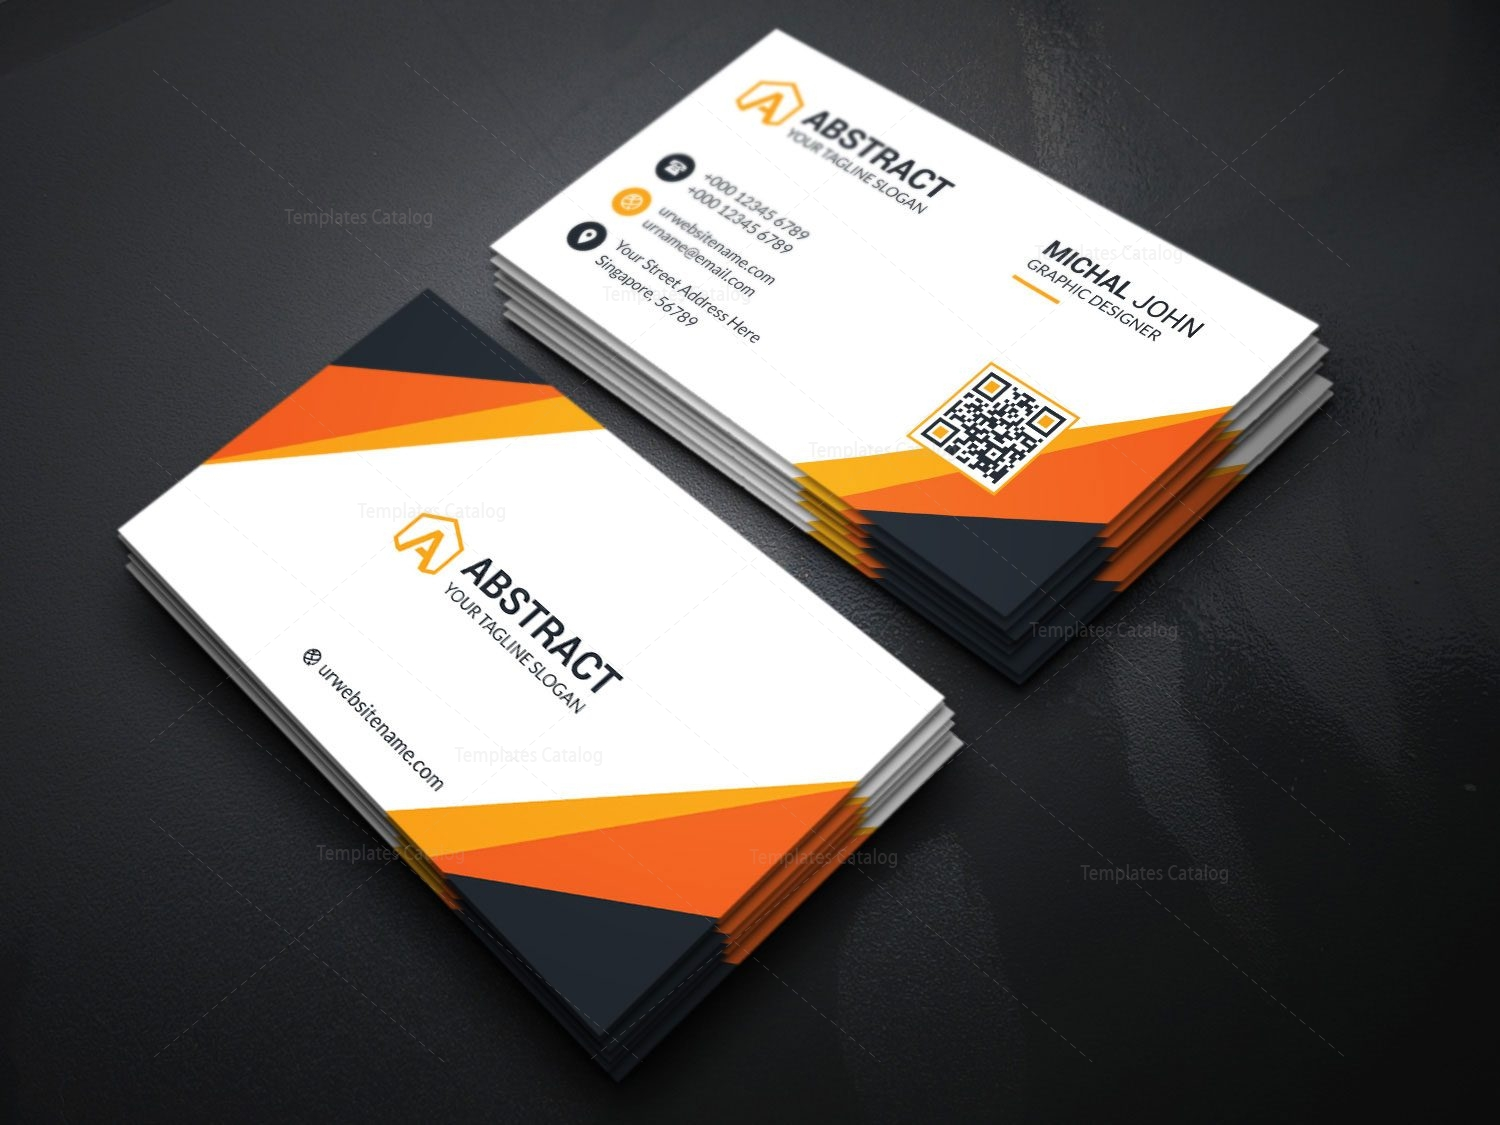 Visiting Card Template for Companies 000175 Template Catalog – Visiting Card